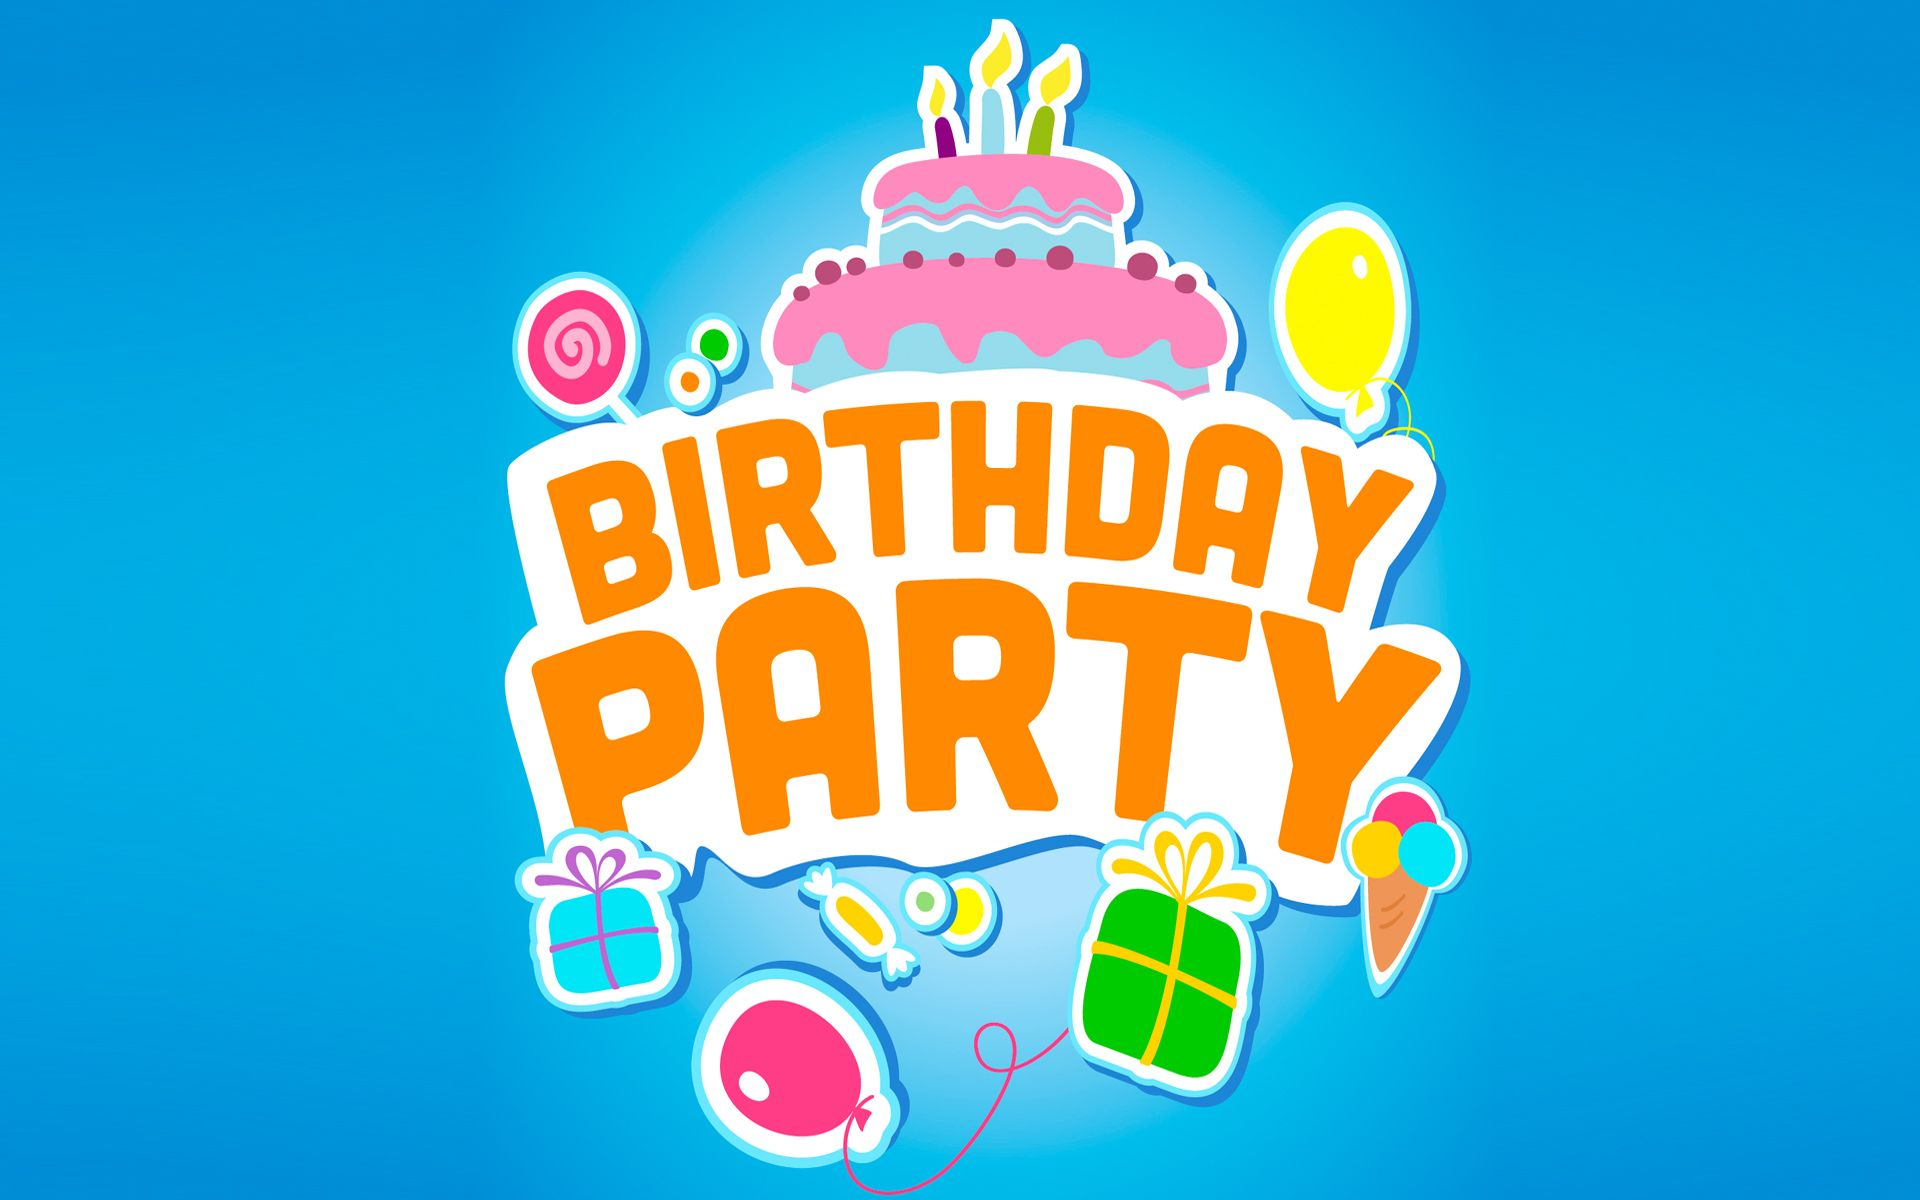 Best Birthday Celebration Cake And Gifts Greetings